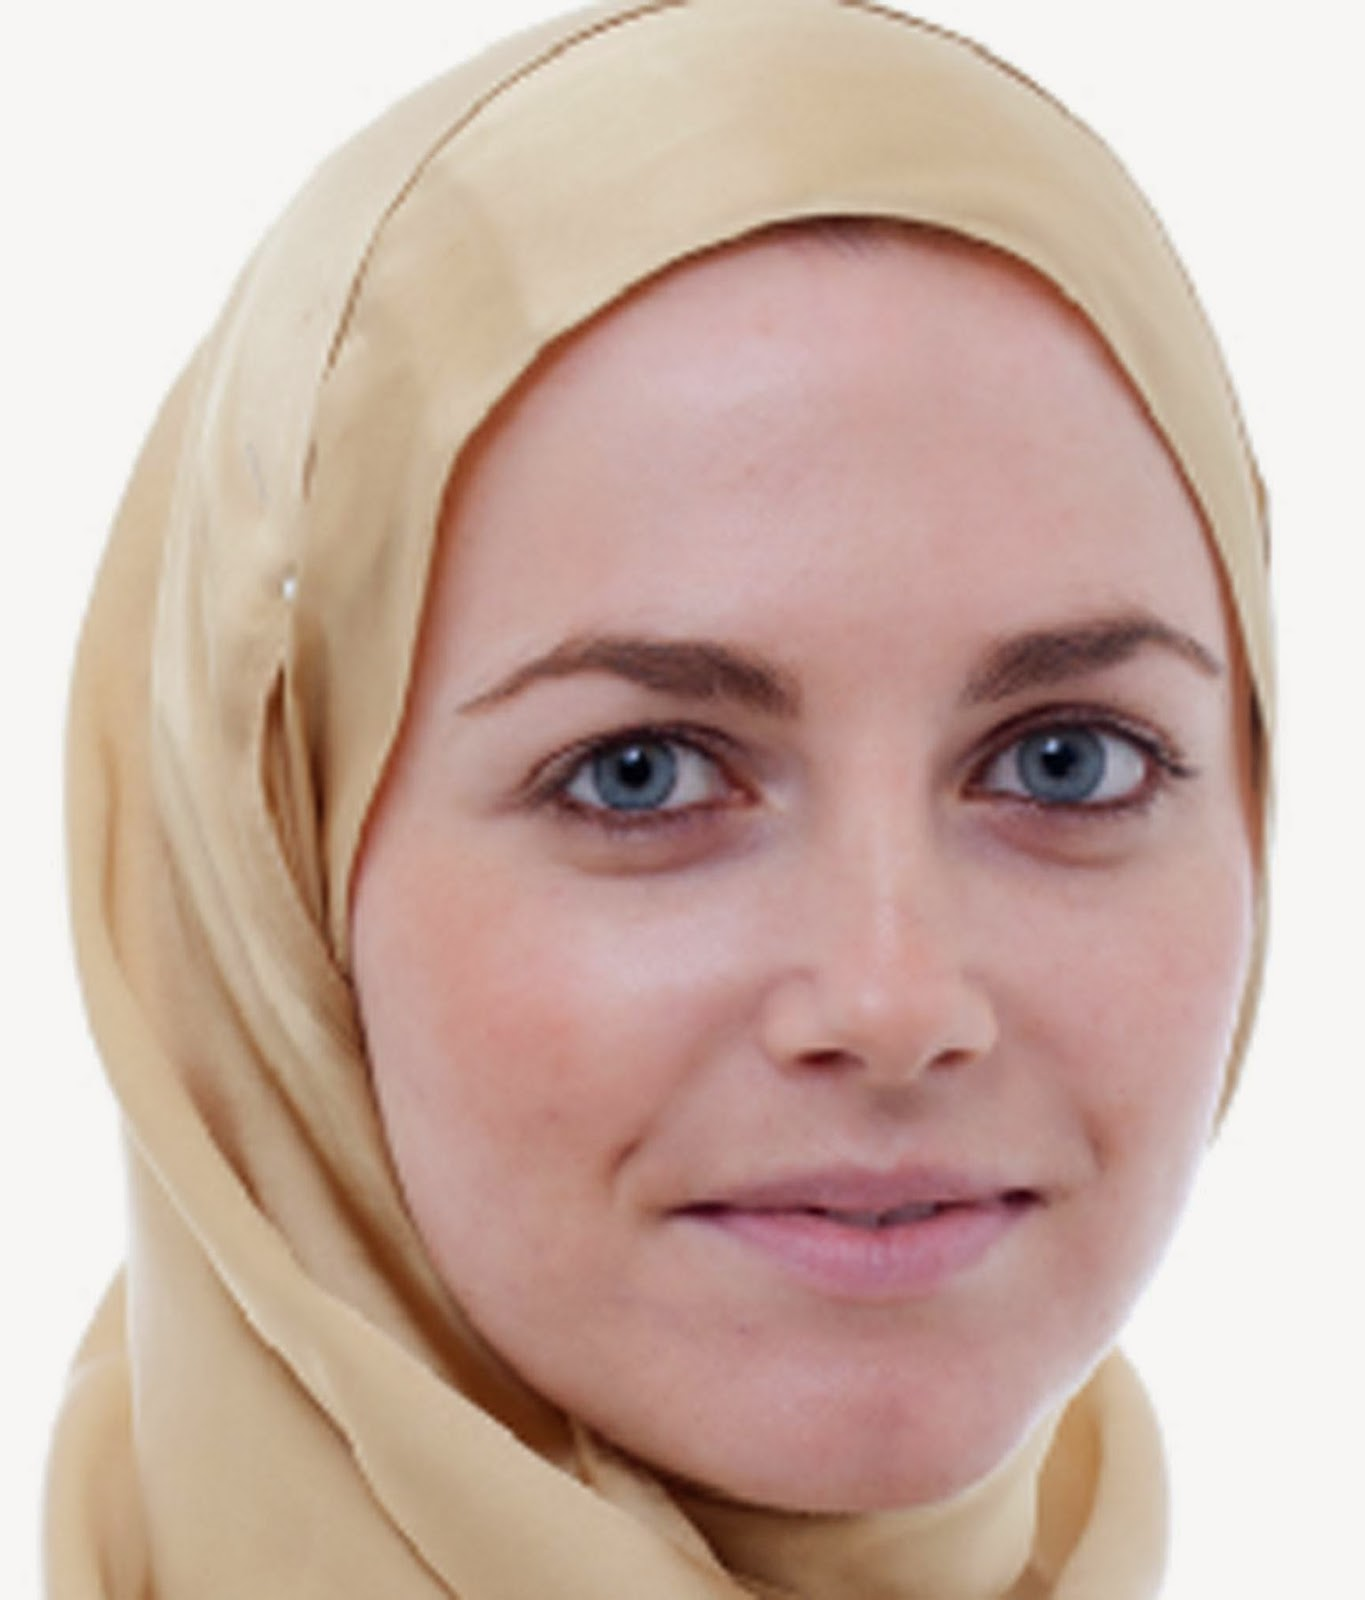 ferndale muslim single women In the category casual encounters ferndale you can find more than 1,000 personals ads, eg: women looking for women or men looking for women.